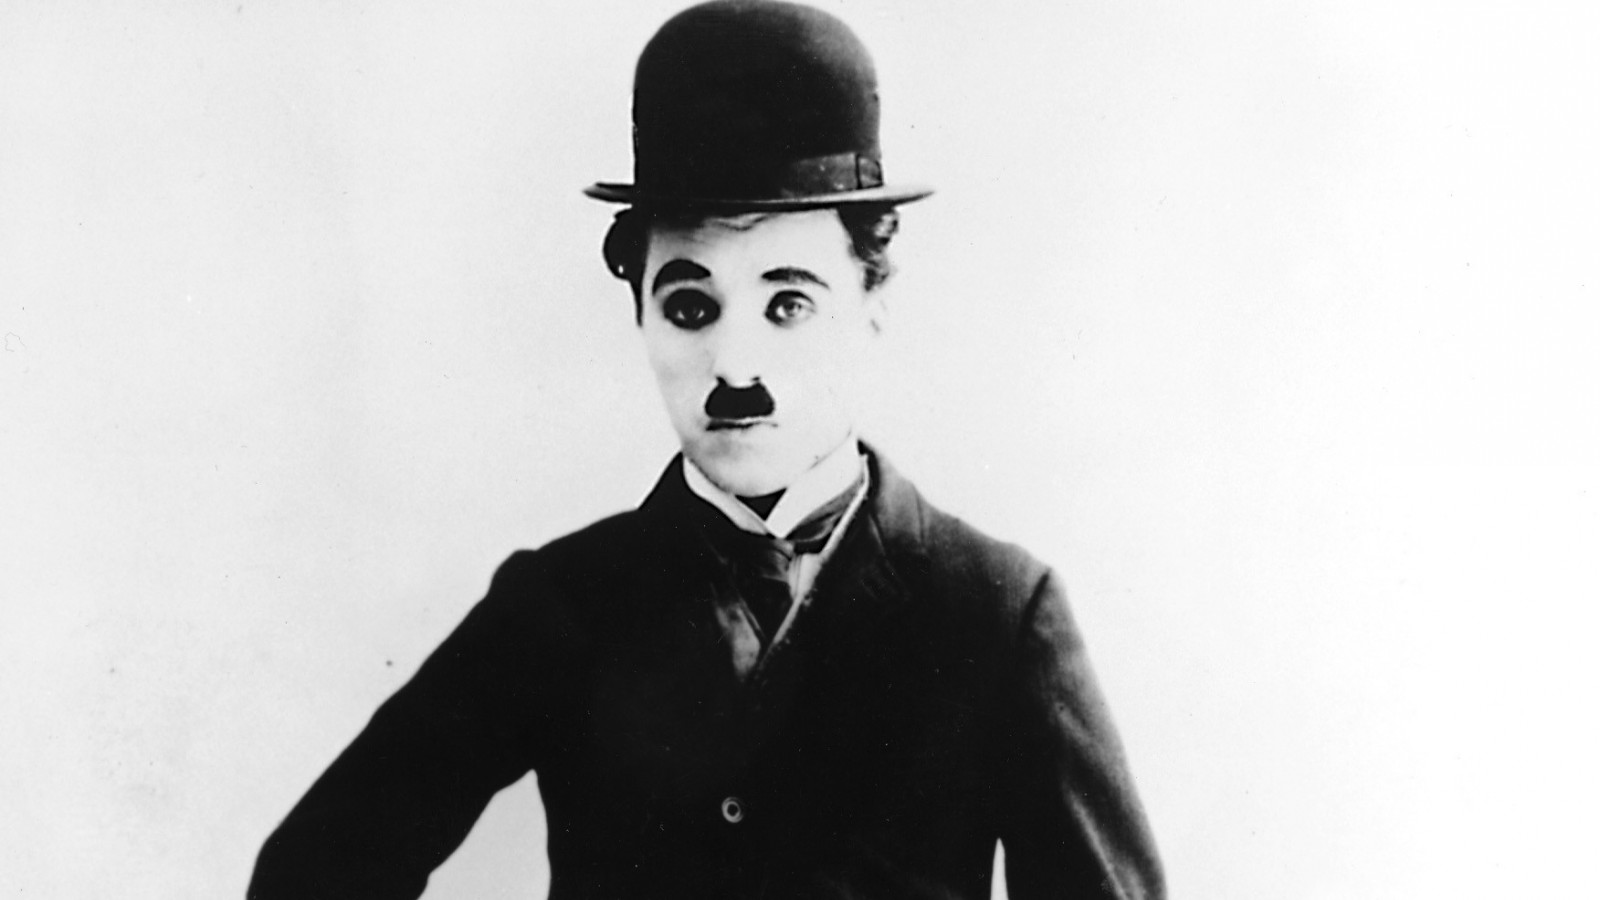 charlie chaplin hd wallpapers 8 HD Wallpapers HD images 1600x900